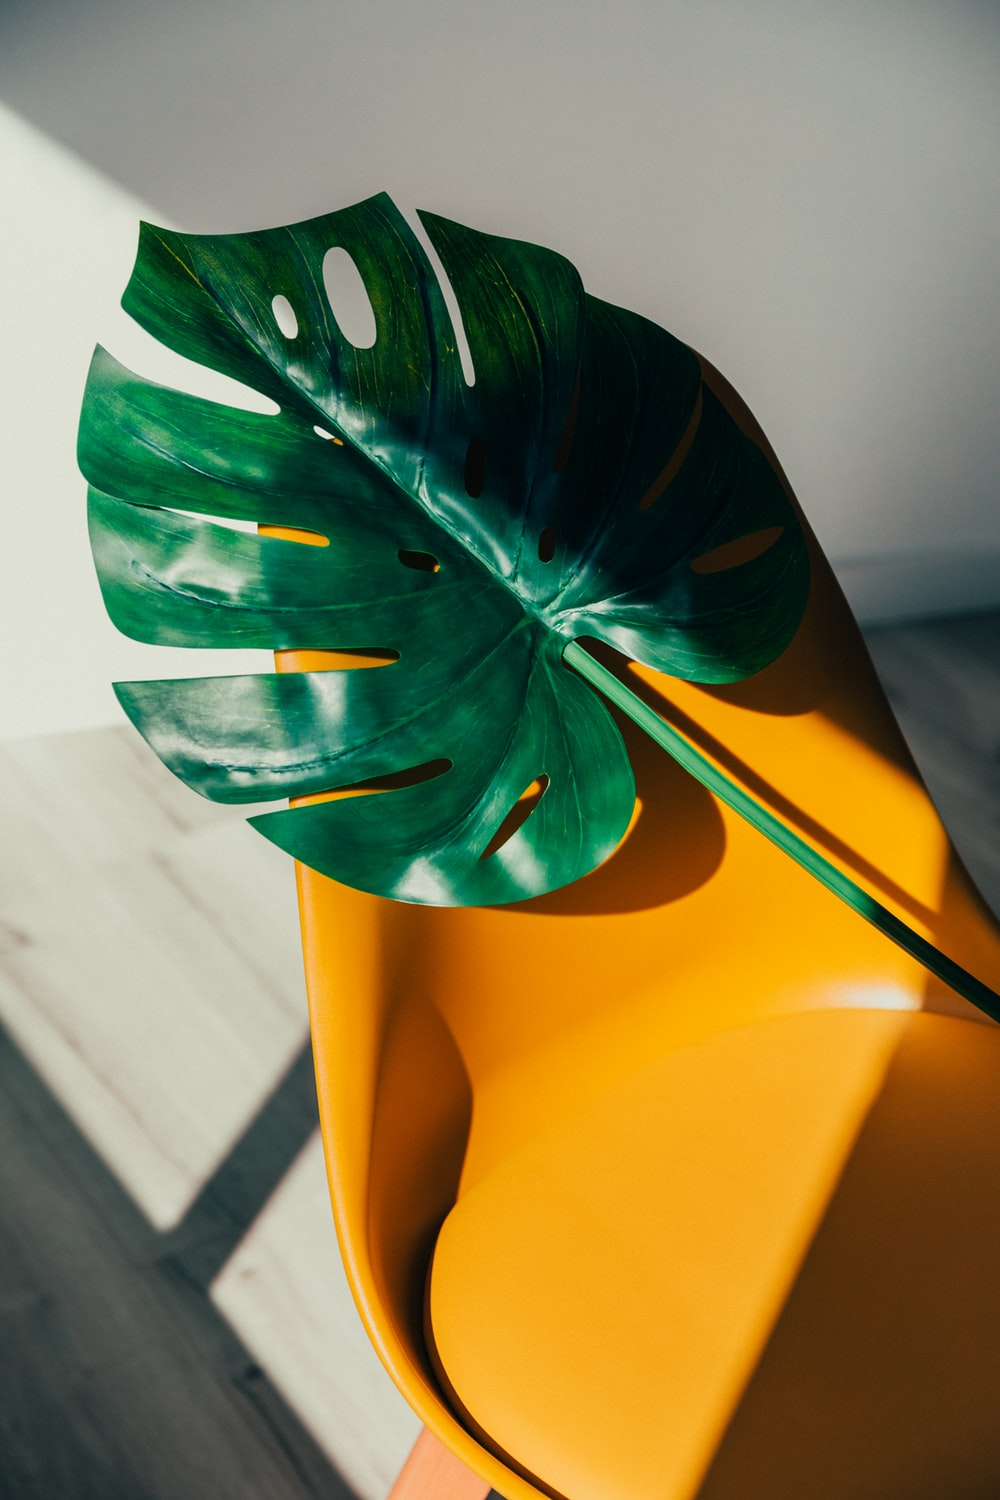 yellow and green flower in close up photography